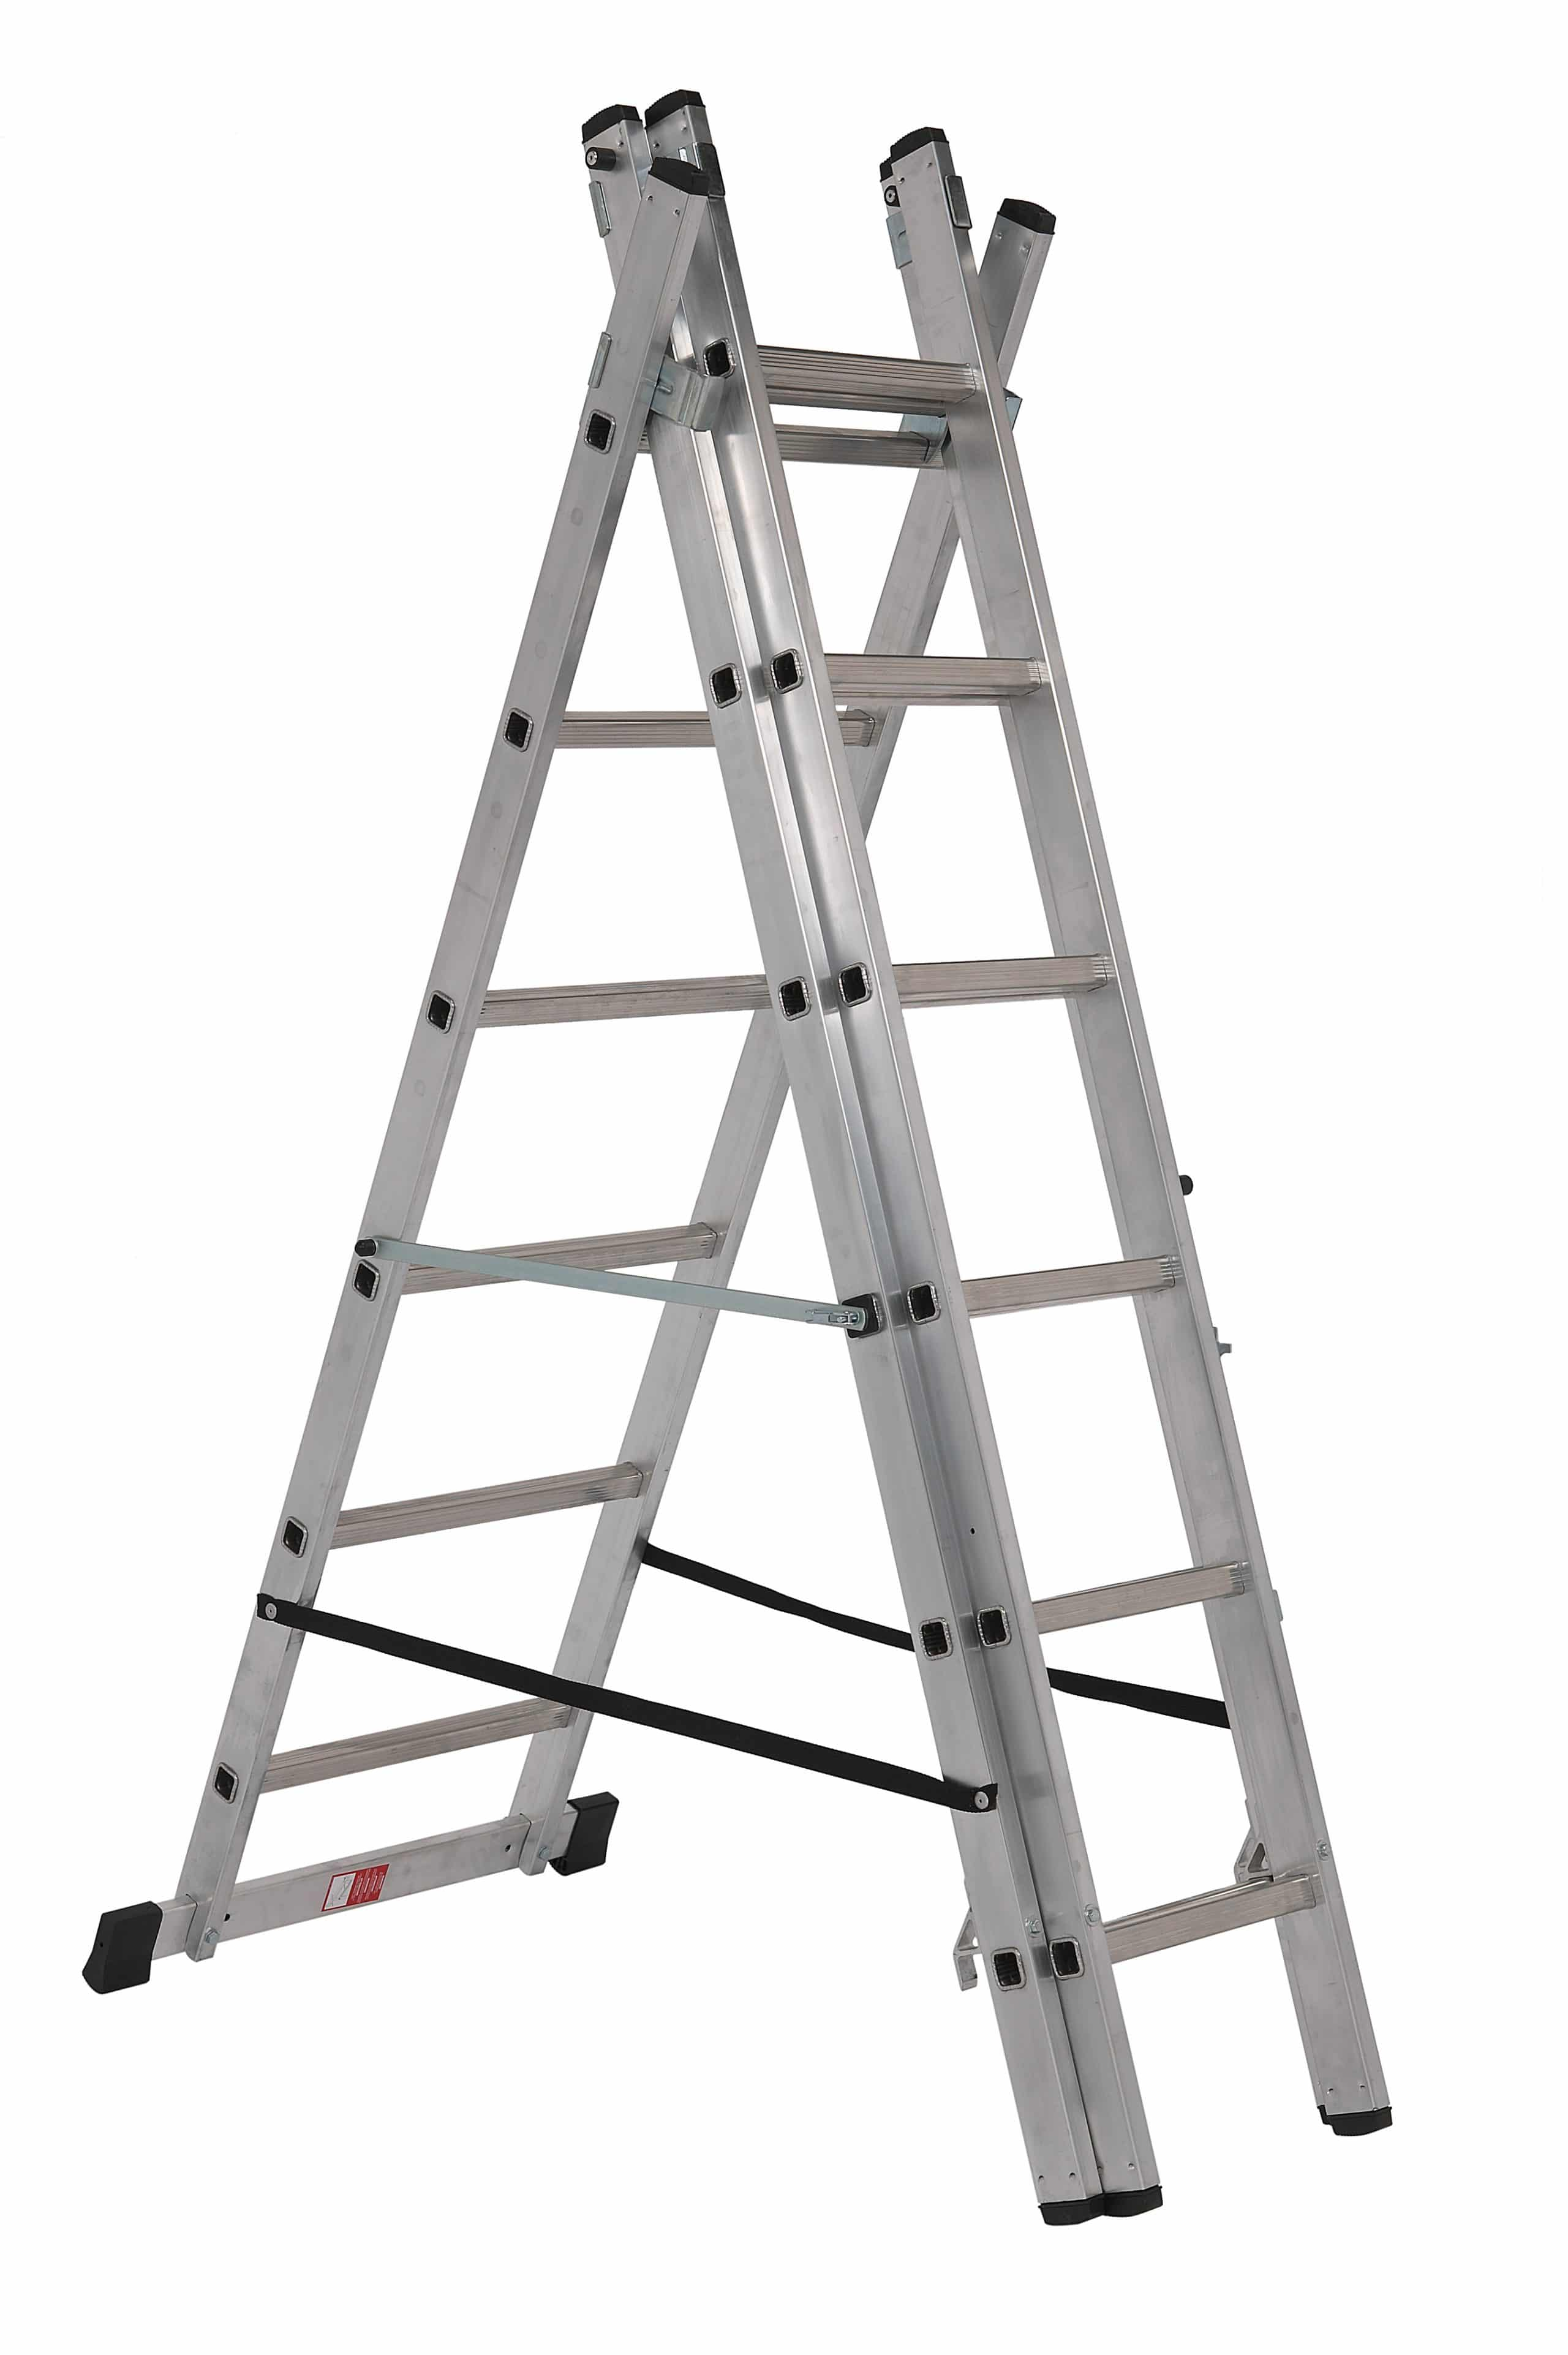 Combination Ladders For Hire Nationwide 163 25 Per Week